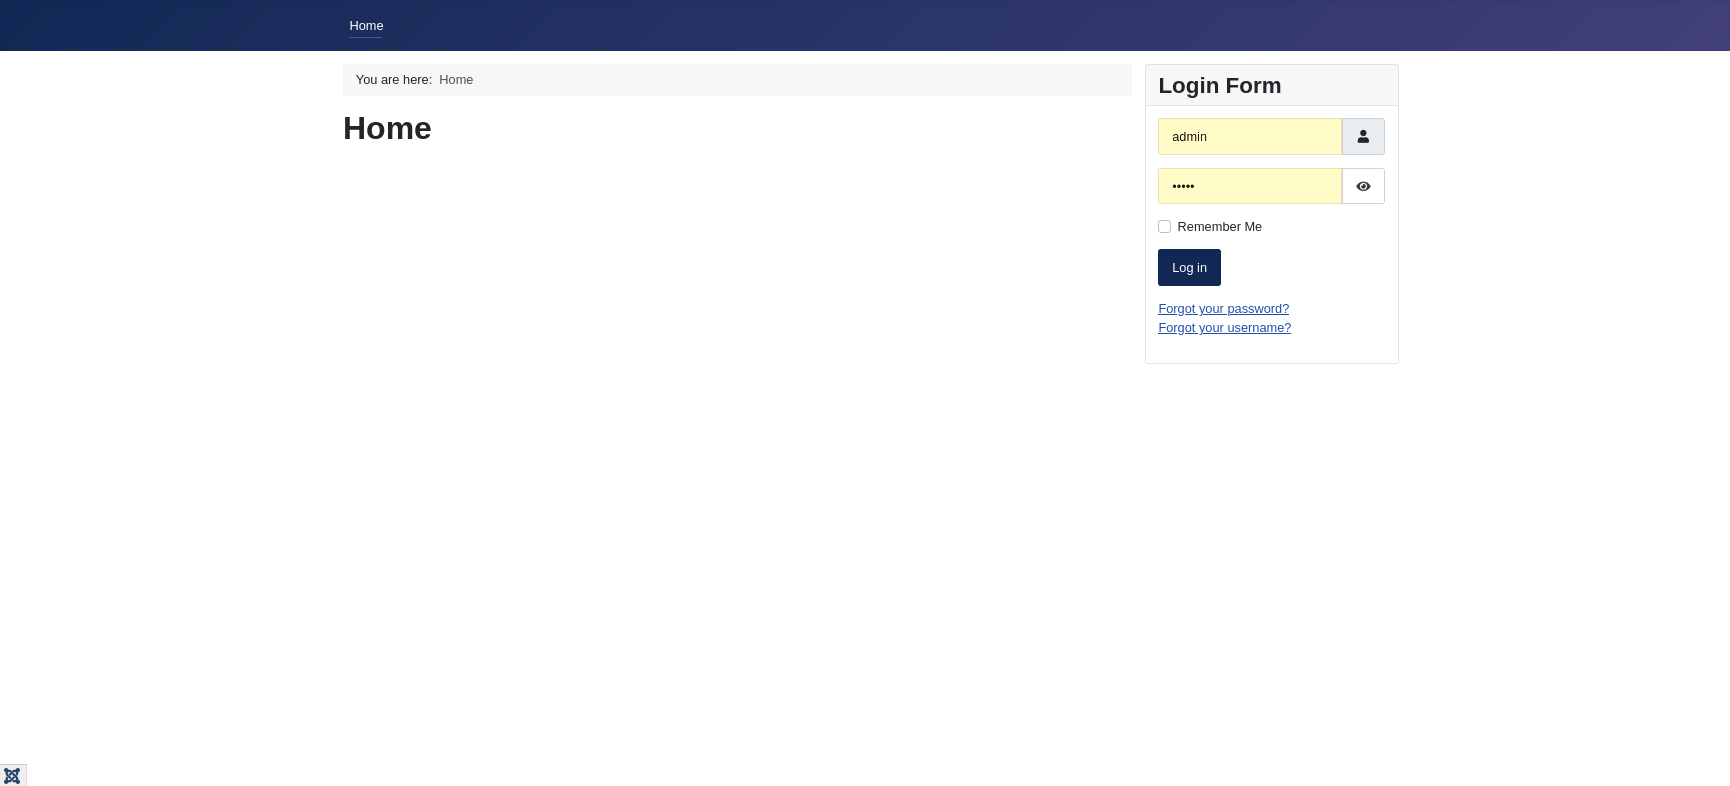 Brand deactivated - This is how it looks